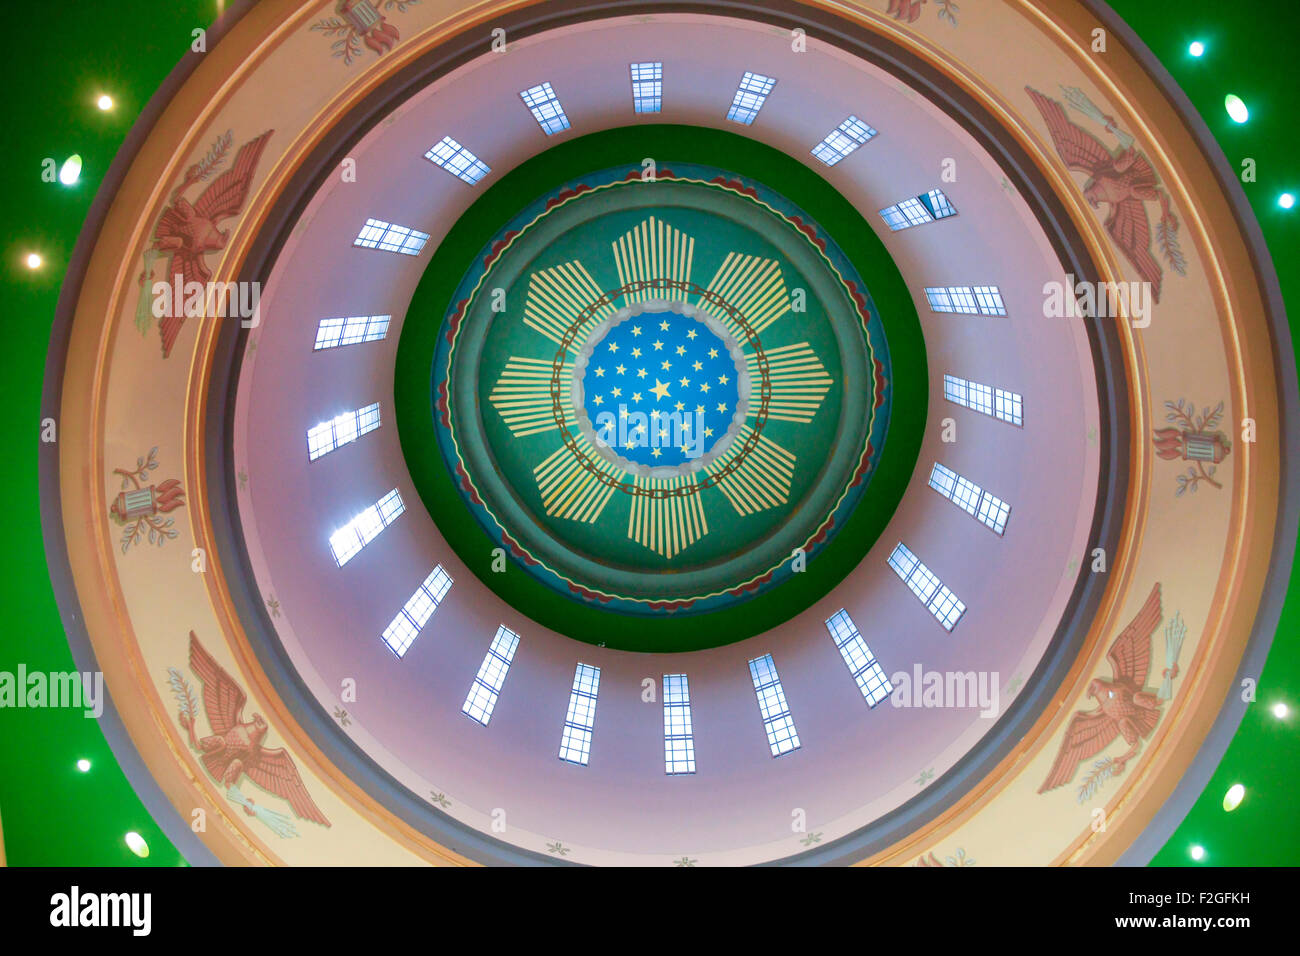 The Oregon State Capitol Building Interior Ceiling Of The Dome Above Stock Photo Royalty Free